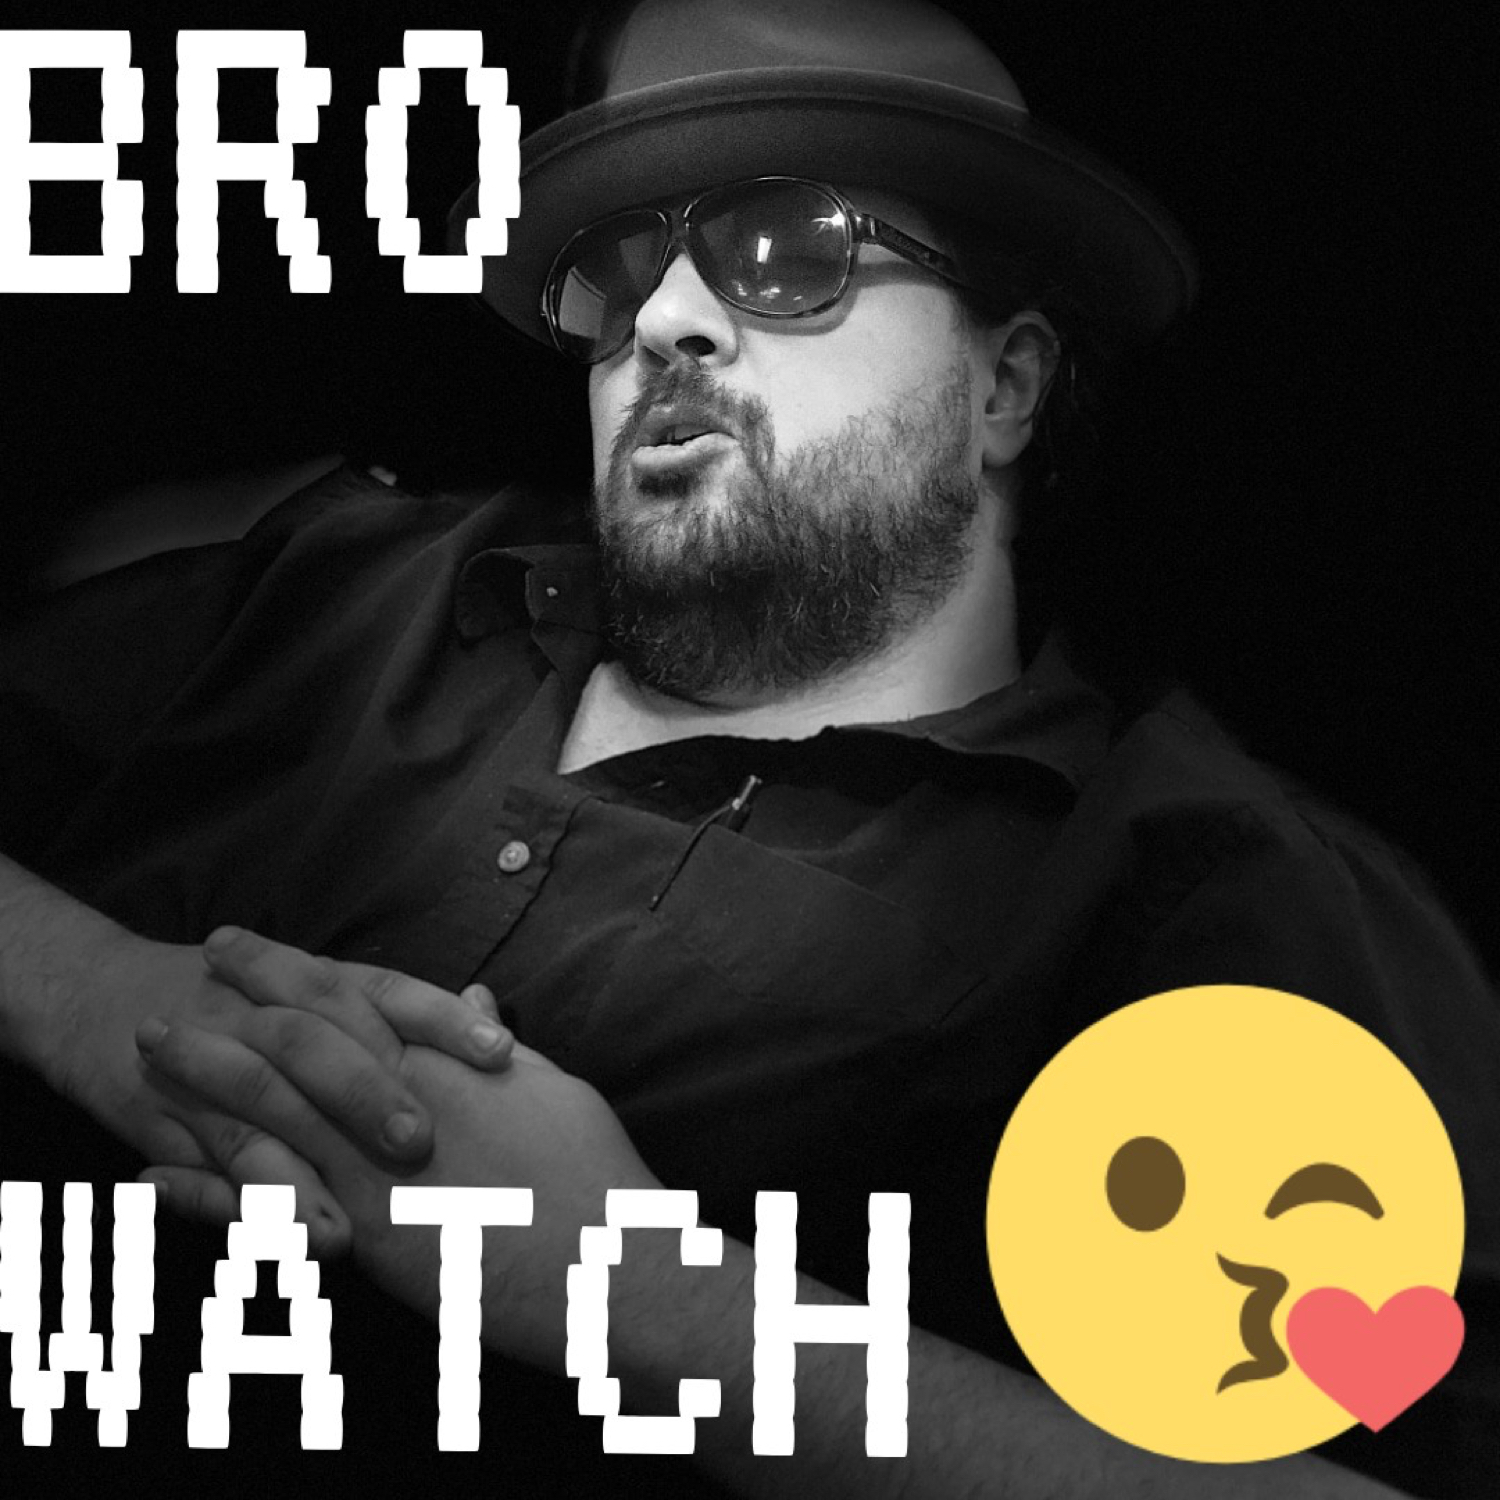 Bro Watch, Episode 10! Life Finds A Way - The Interrobang